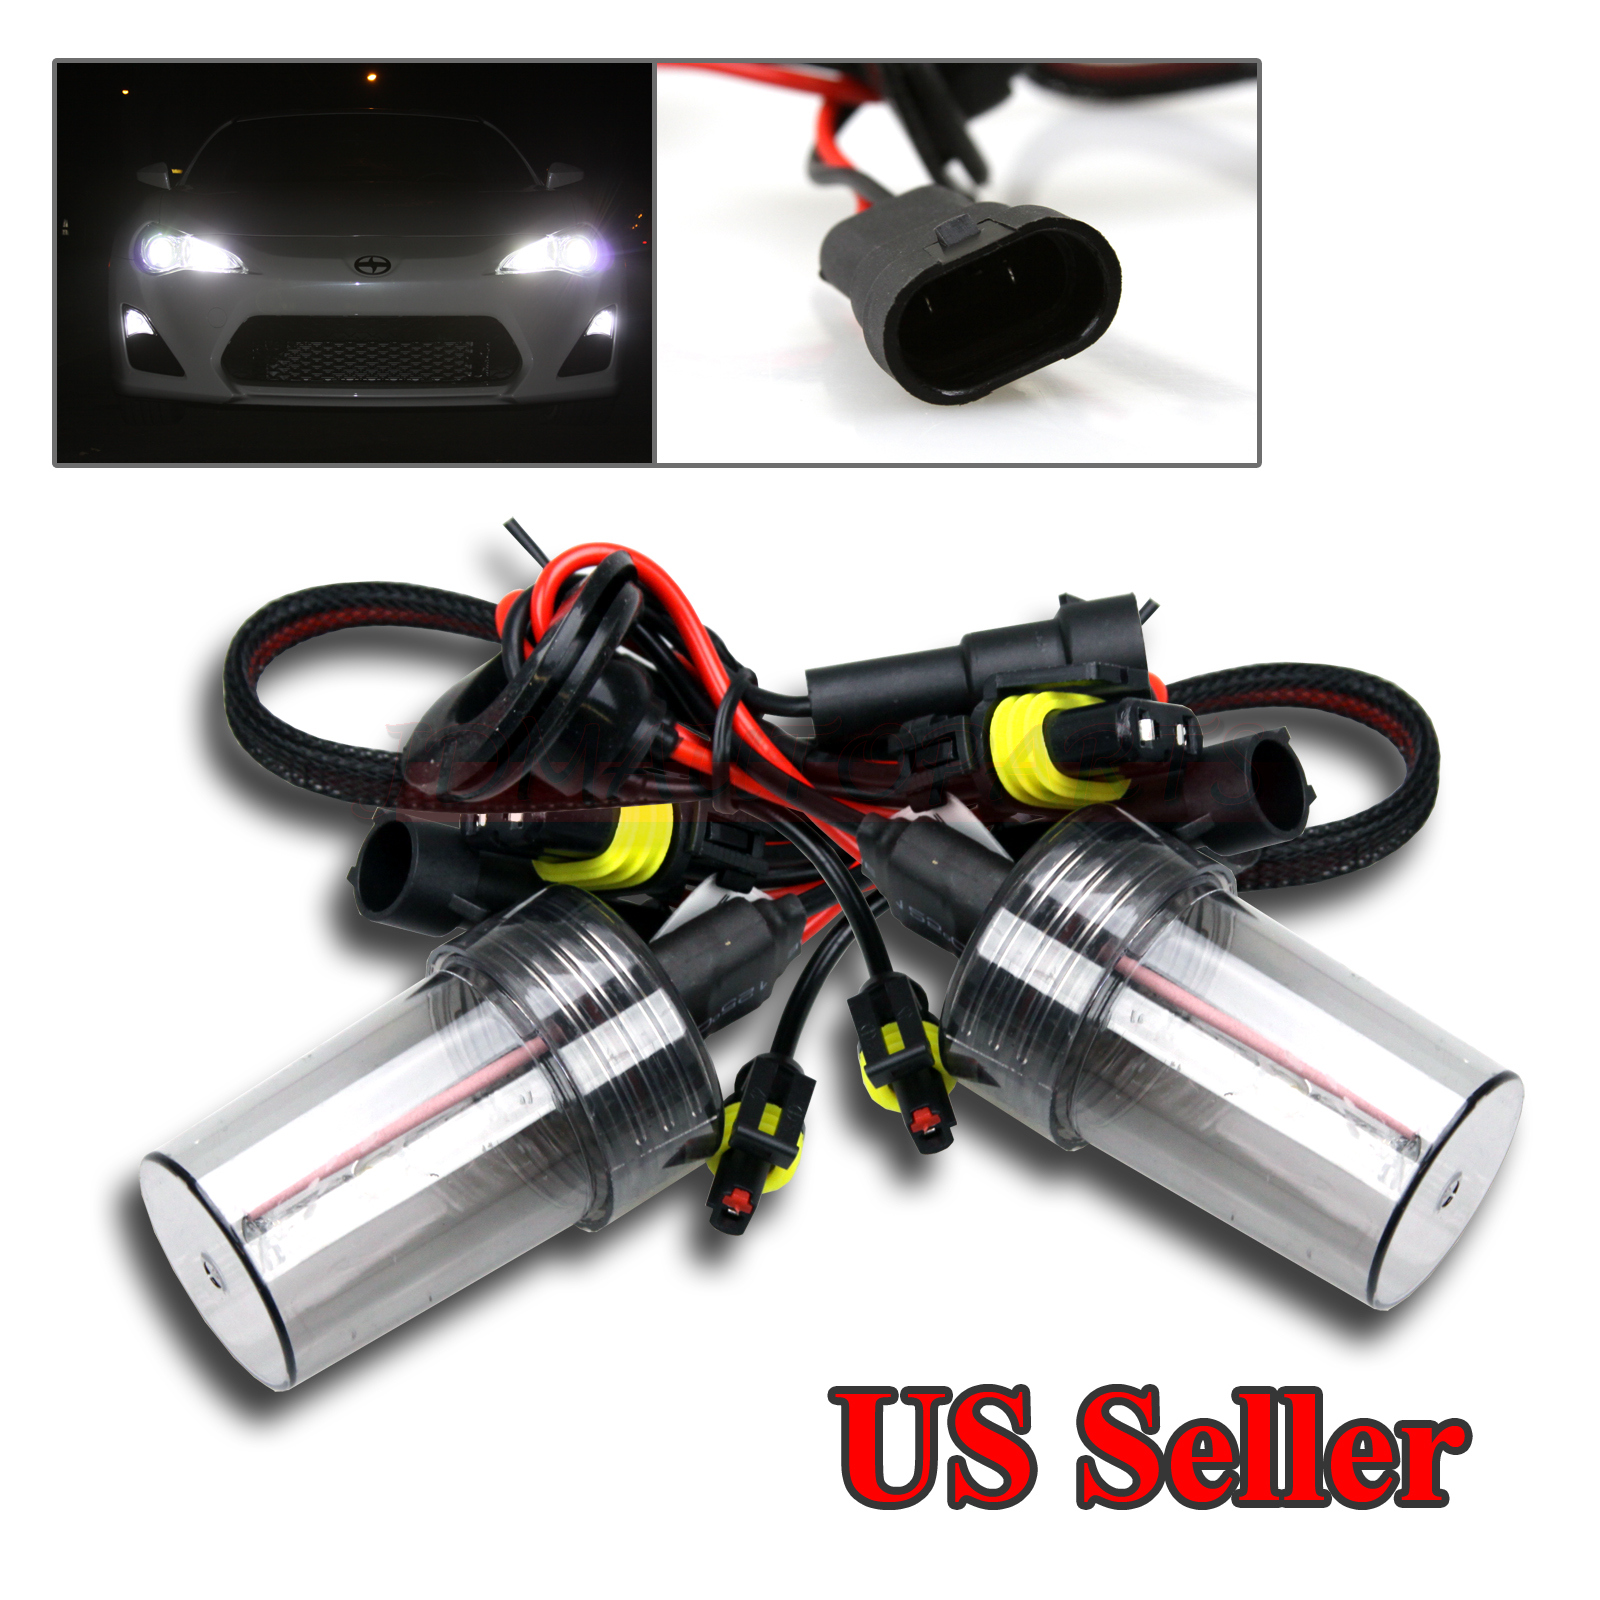 Details About 2 X HID REPLACEMENT AC BULBS FOR LOW BEAM 9006 HB4 6000K 55W PURE WHITE NEW JDM